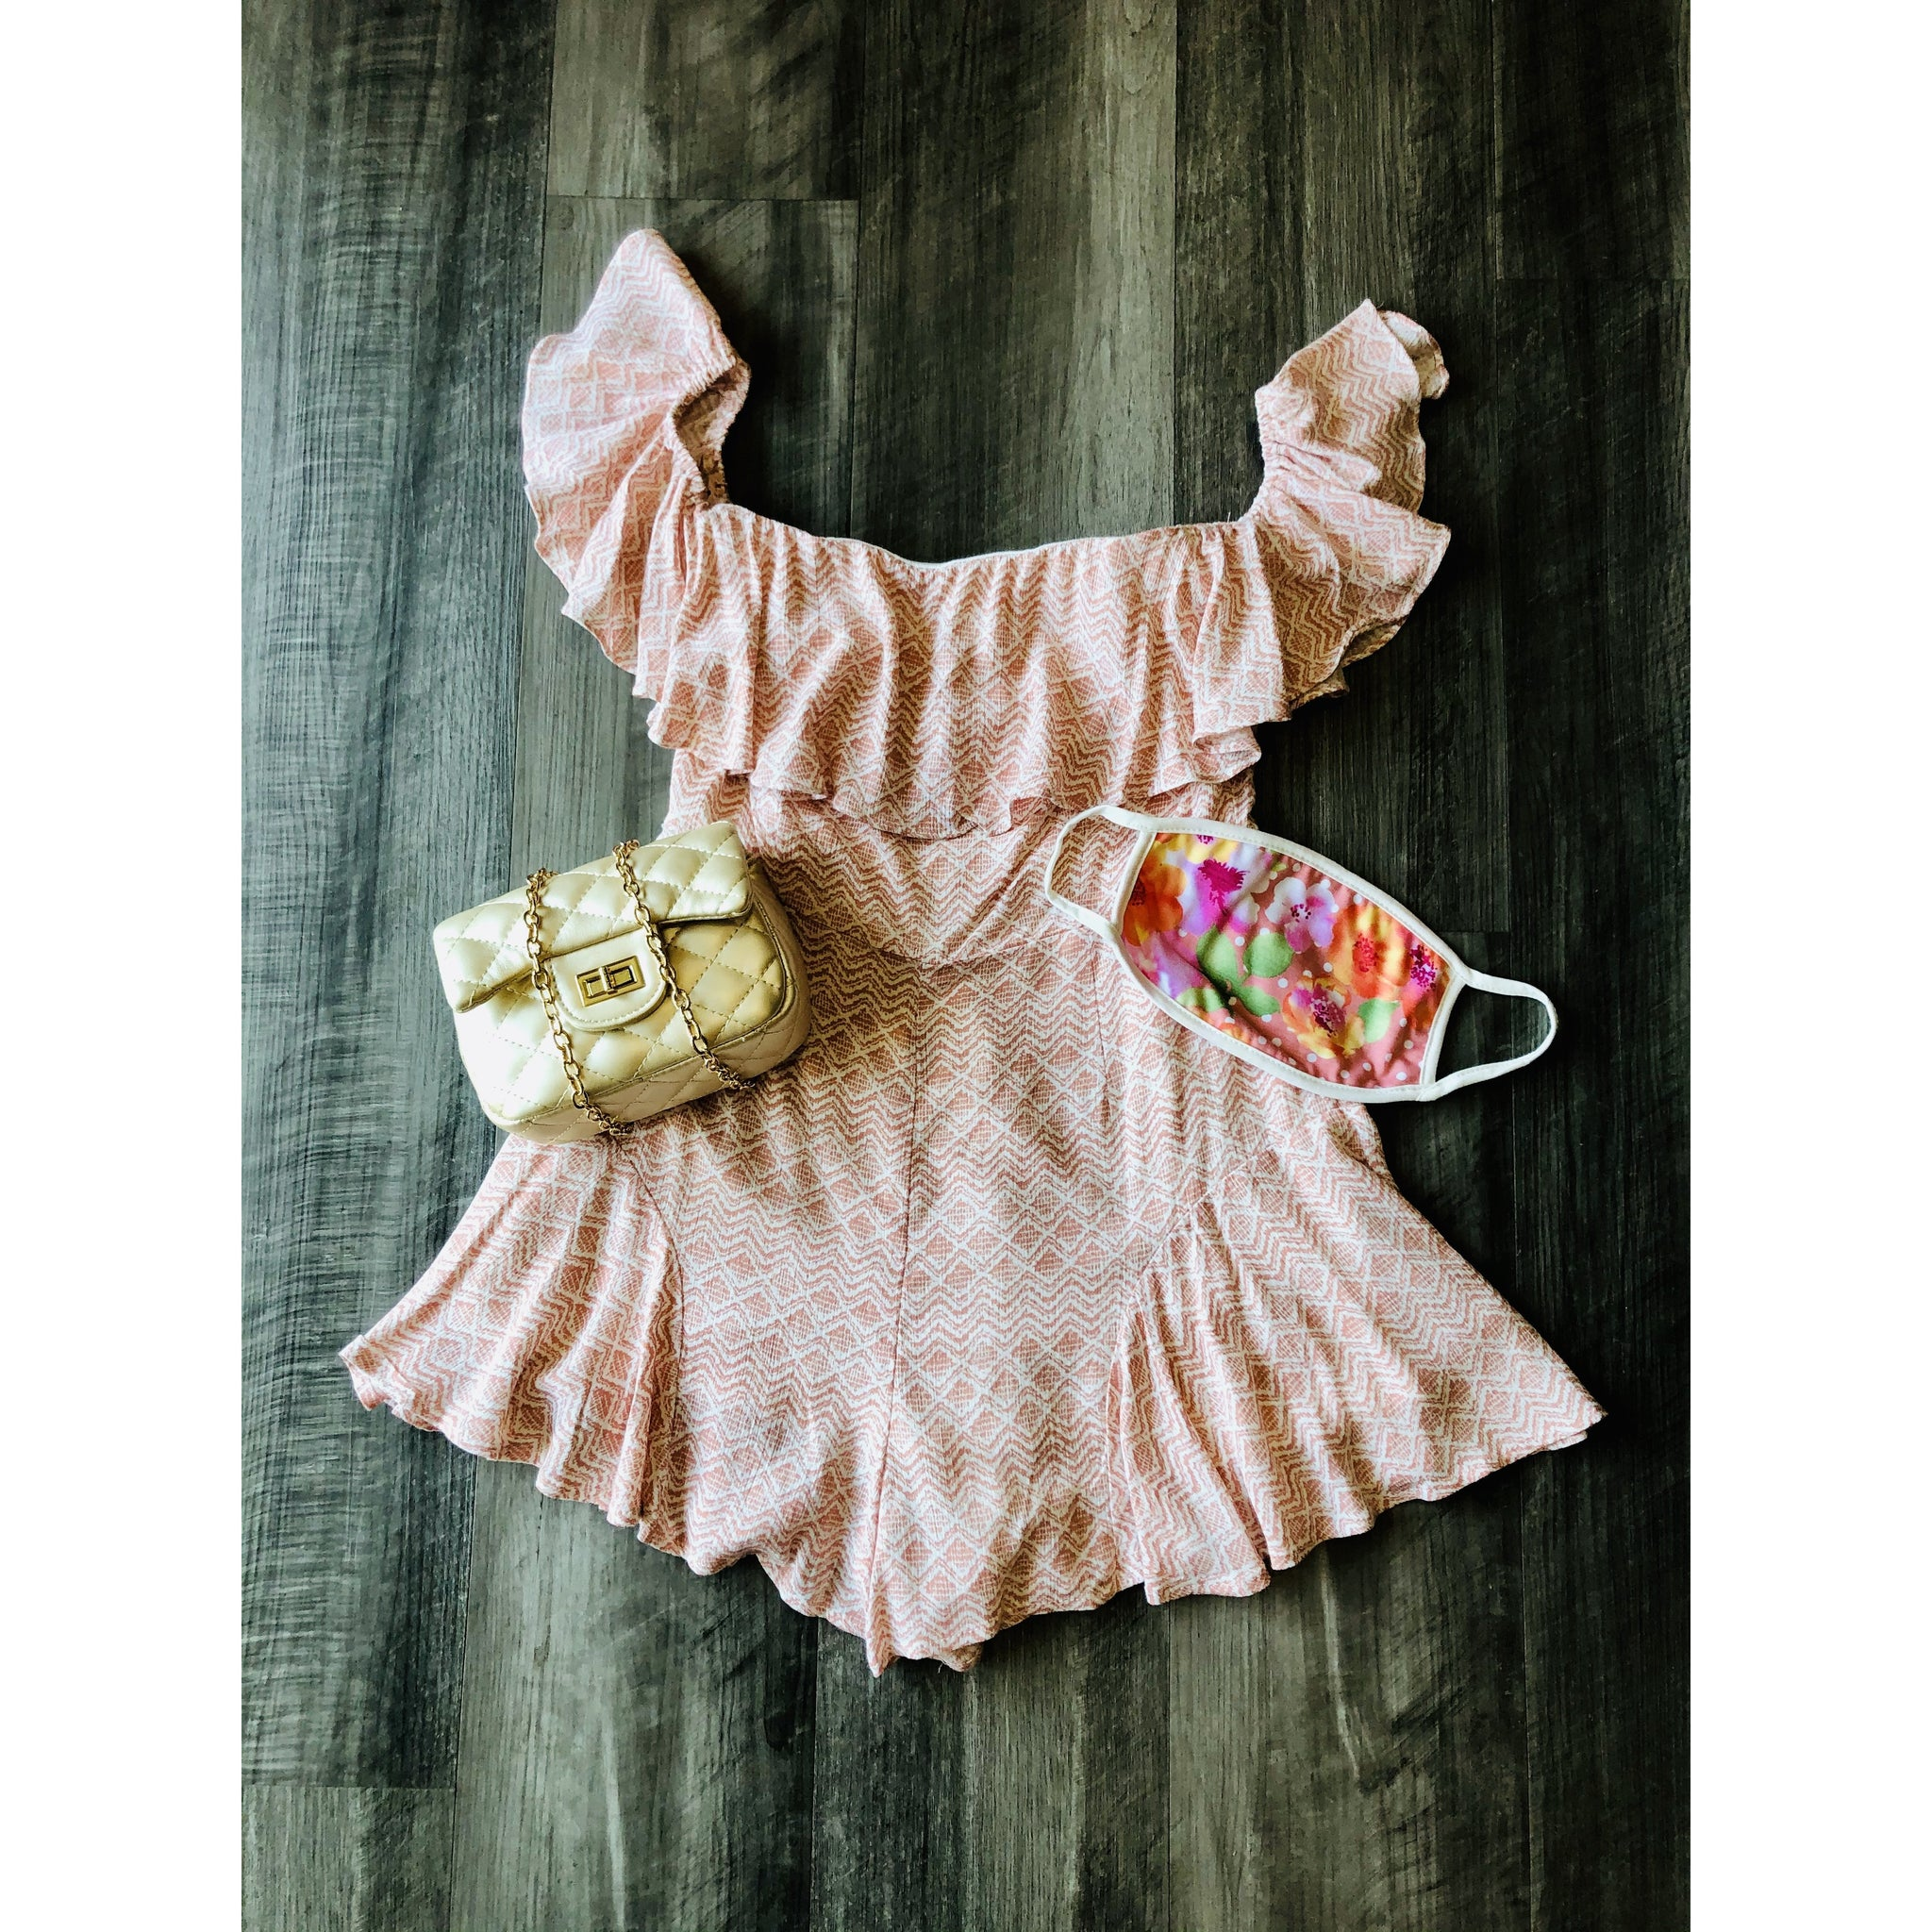 Blush Romper with White Print